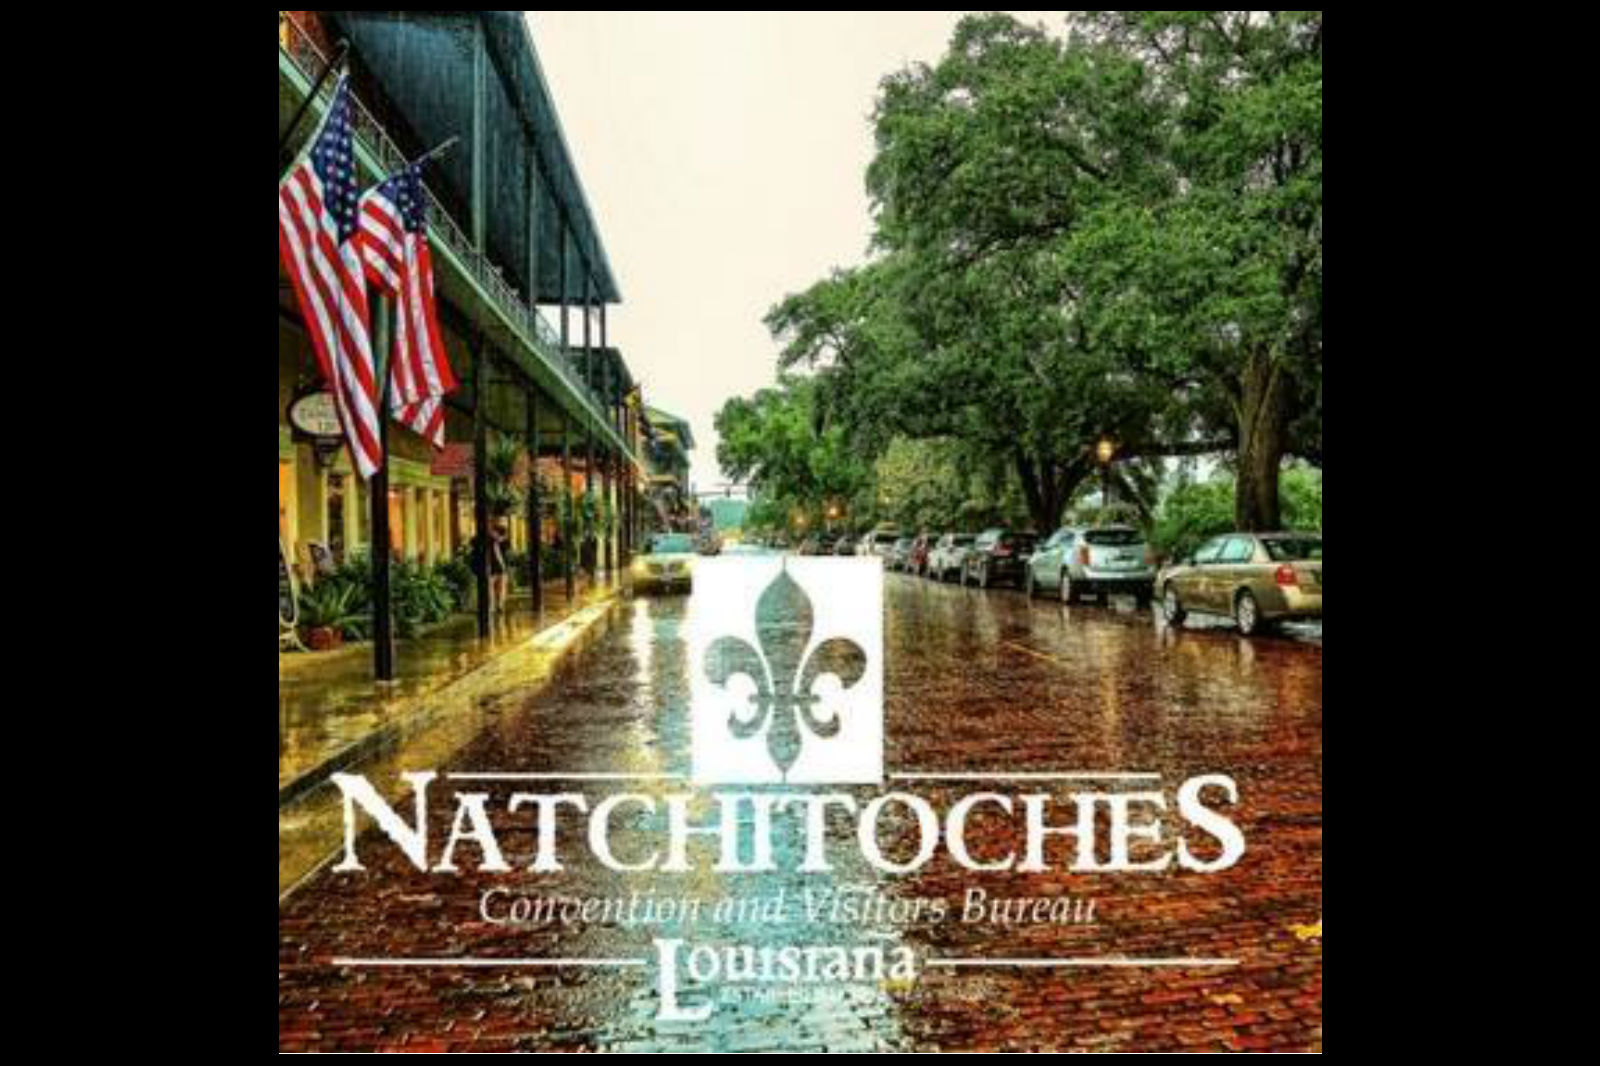 Natchitoches Convention and Visitors Bureau